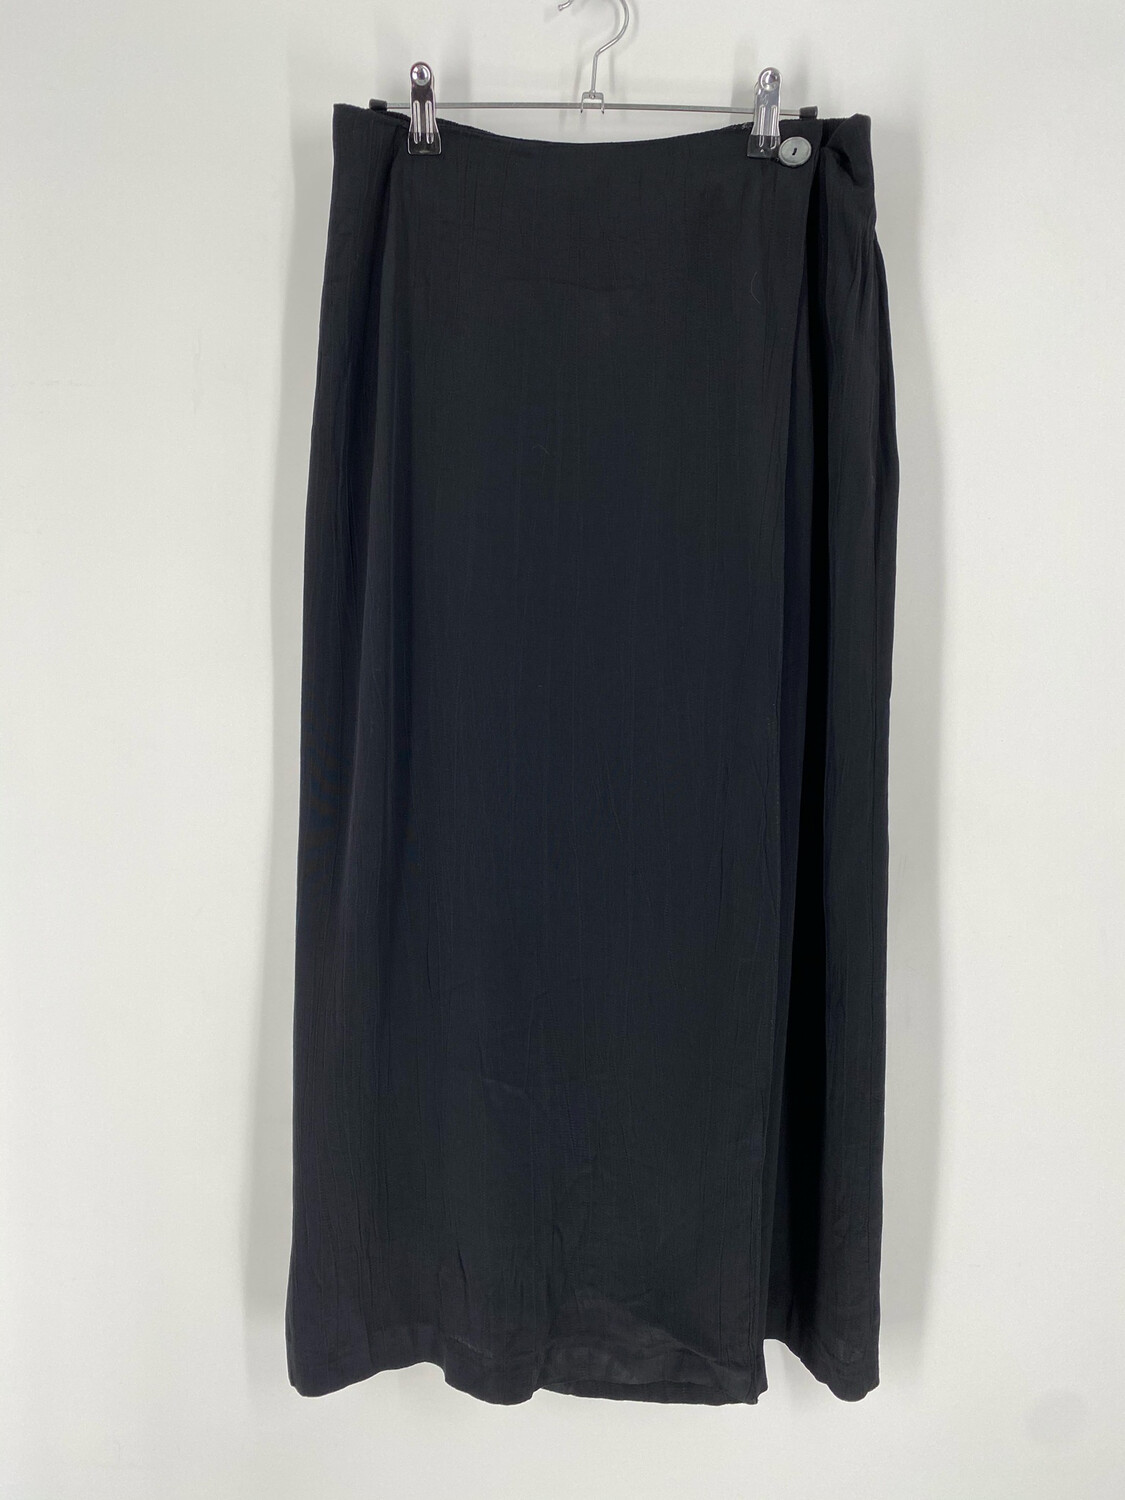 Maggie Lawrence Collections Black Skirt Size 14/16